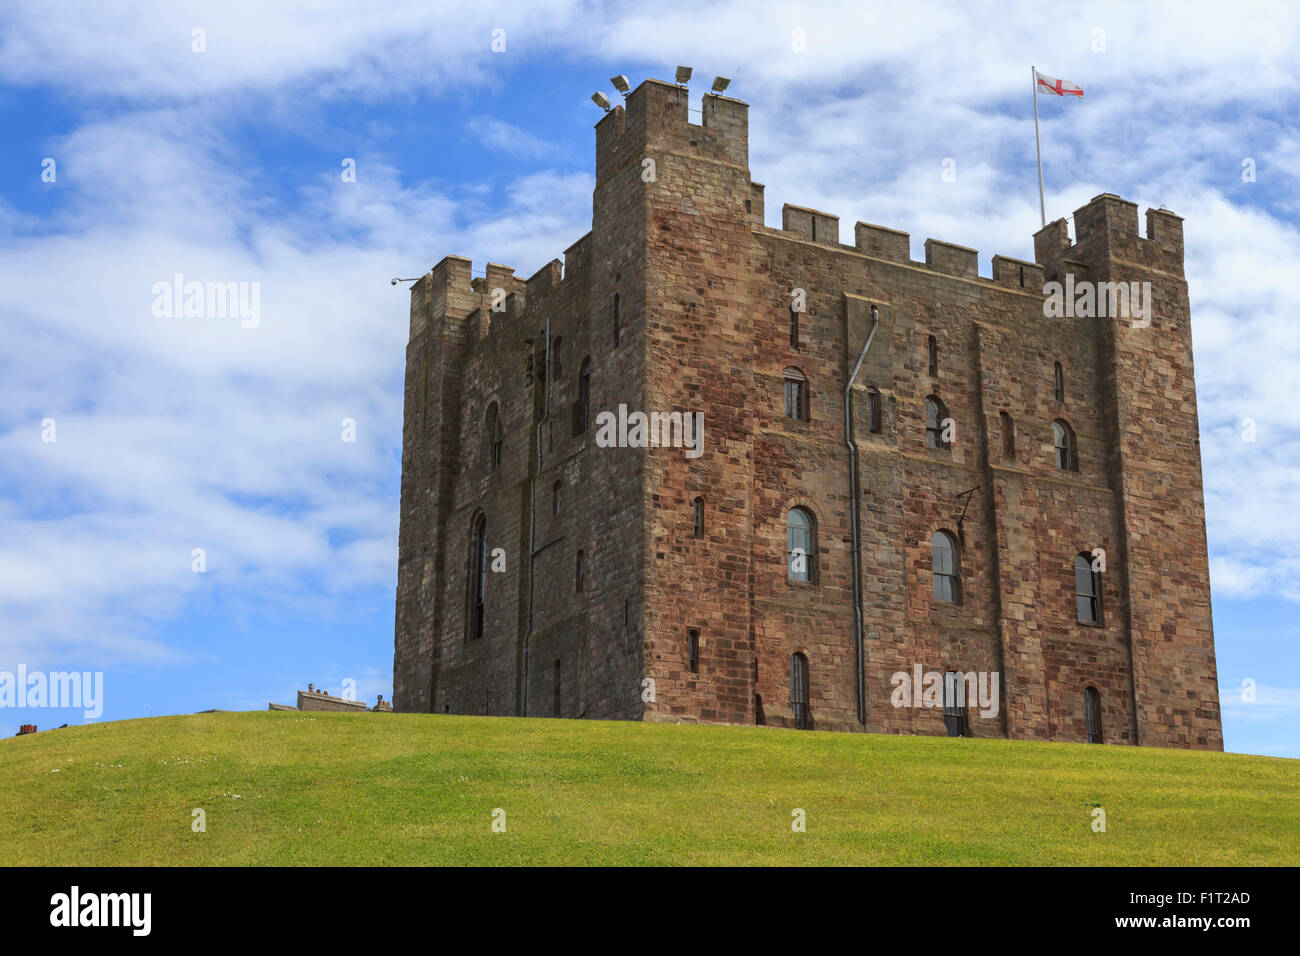 Bamburgh Castle, The Keep, with English flag of St. George, Bamburgh, Northumberland, England, United Kingdom, Europe - Stock Image